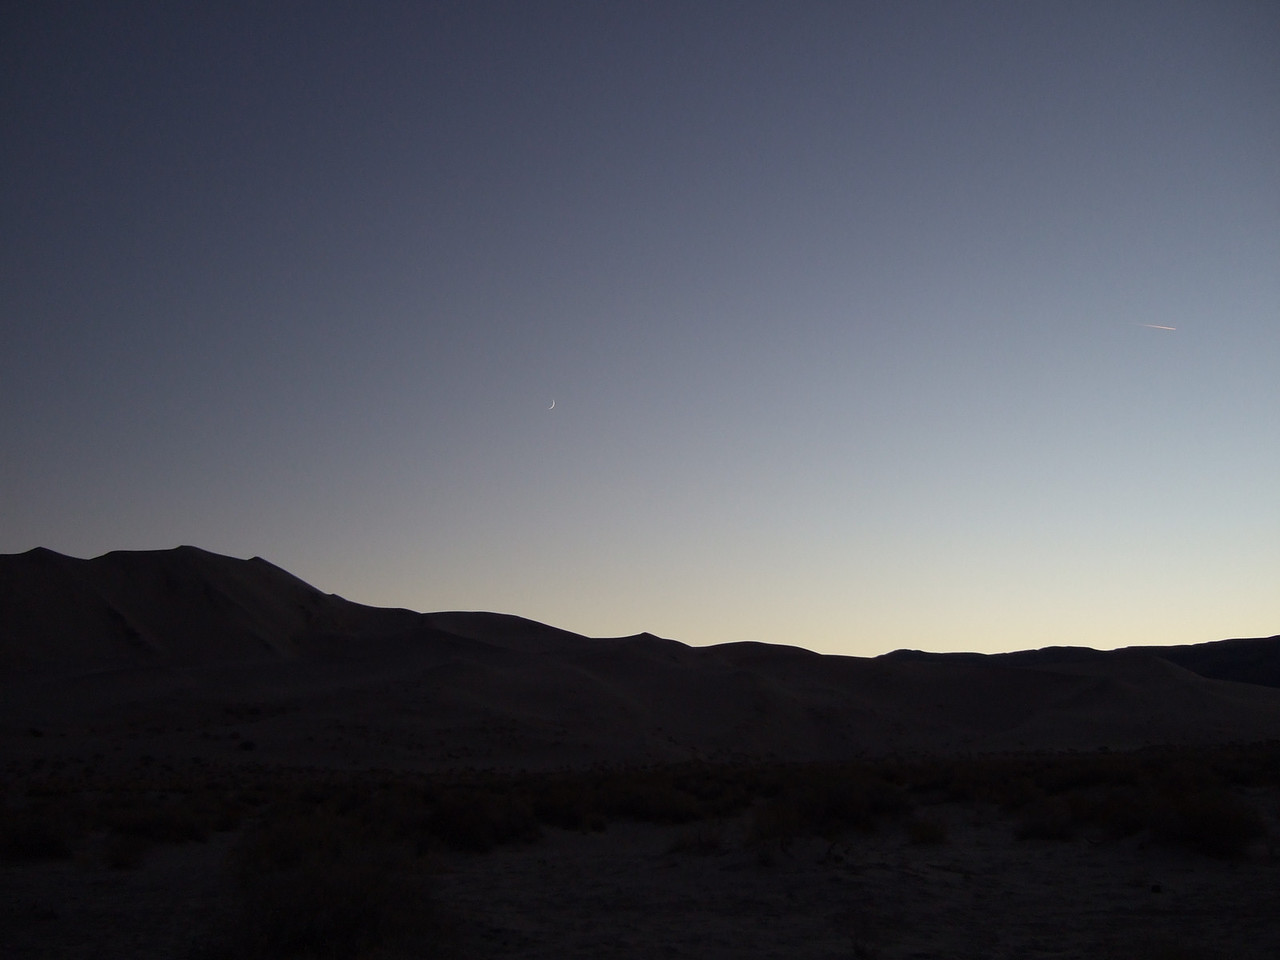 The sun set at 4:10 PM PST over the Inyo Mountains.